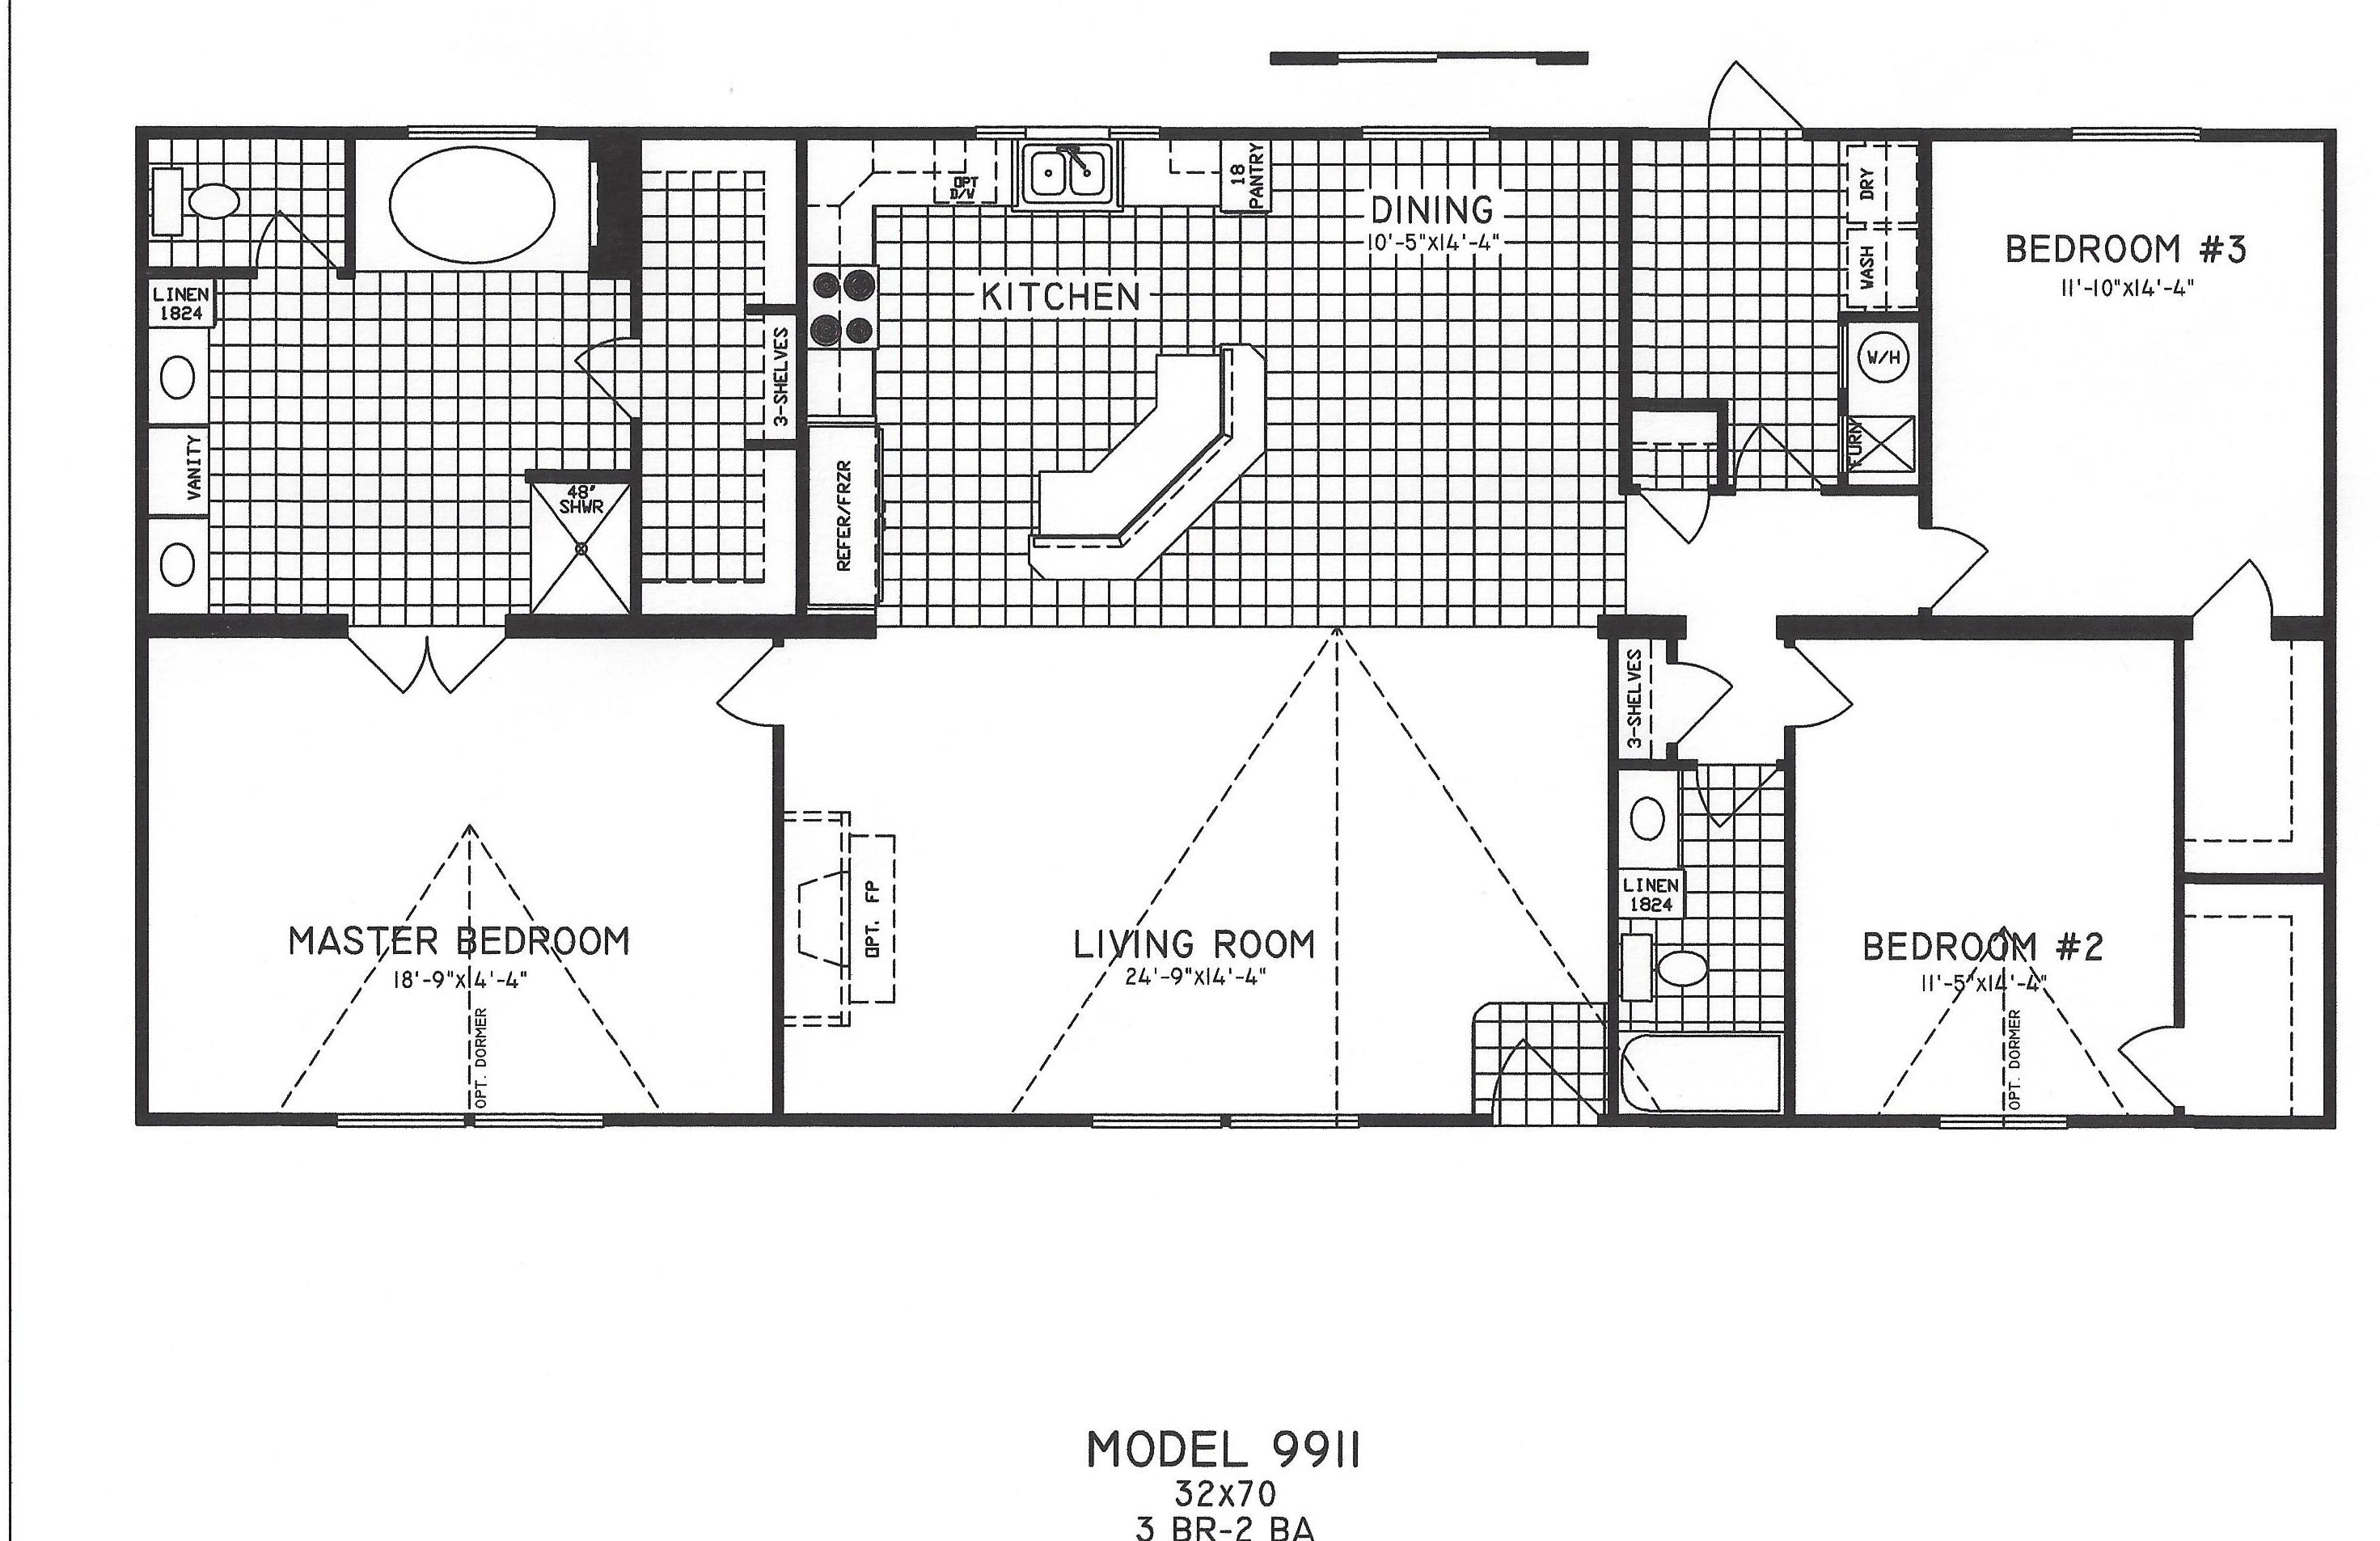 3 bedroom floor plan c 9911 hawks homes manufactured for Bedroom floor plans